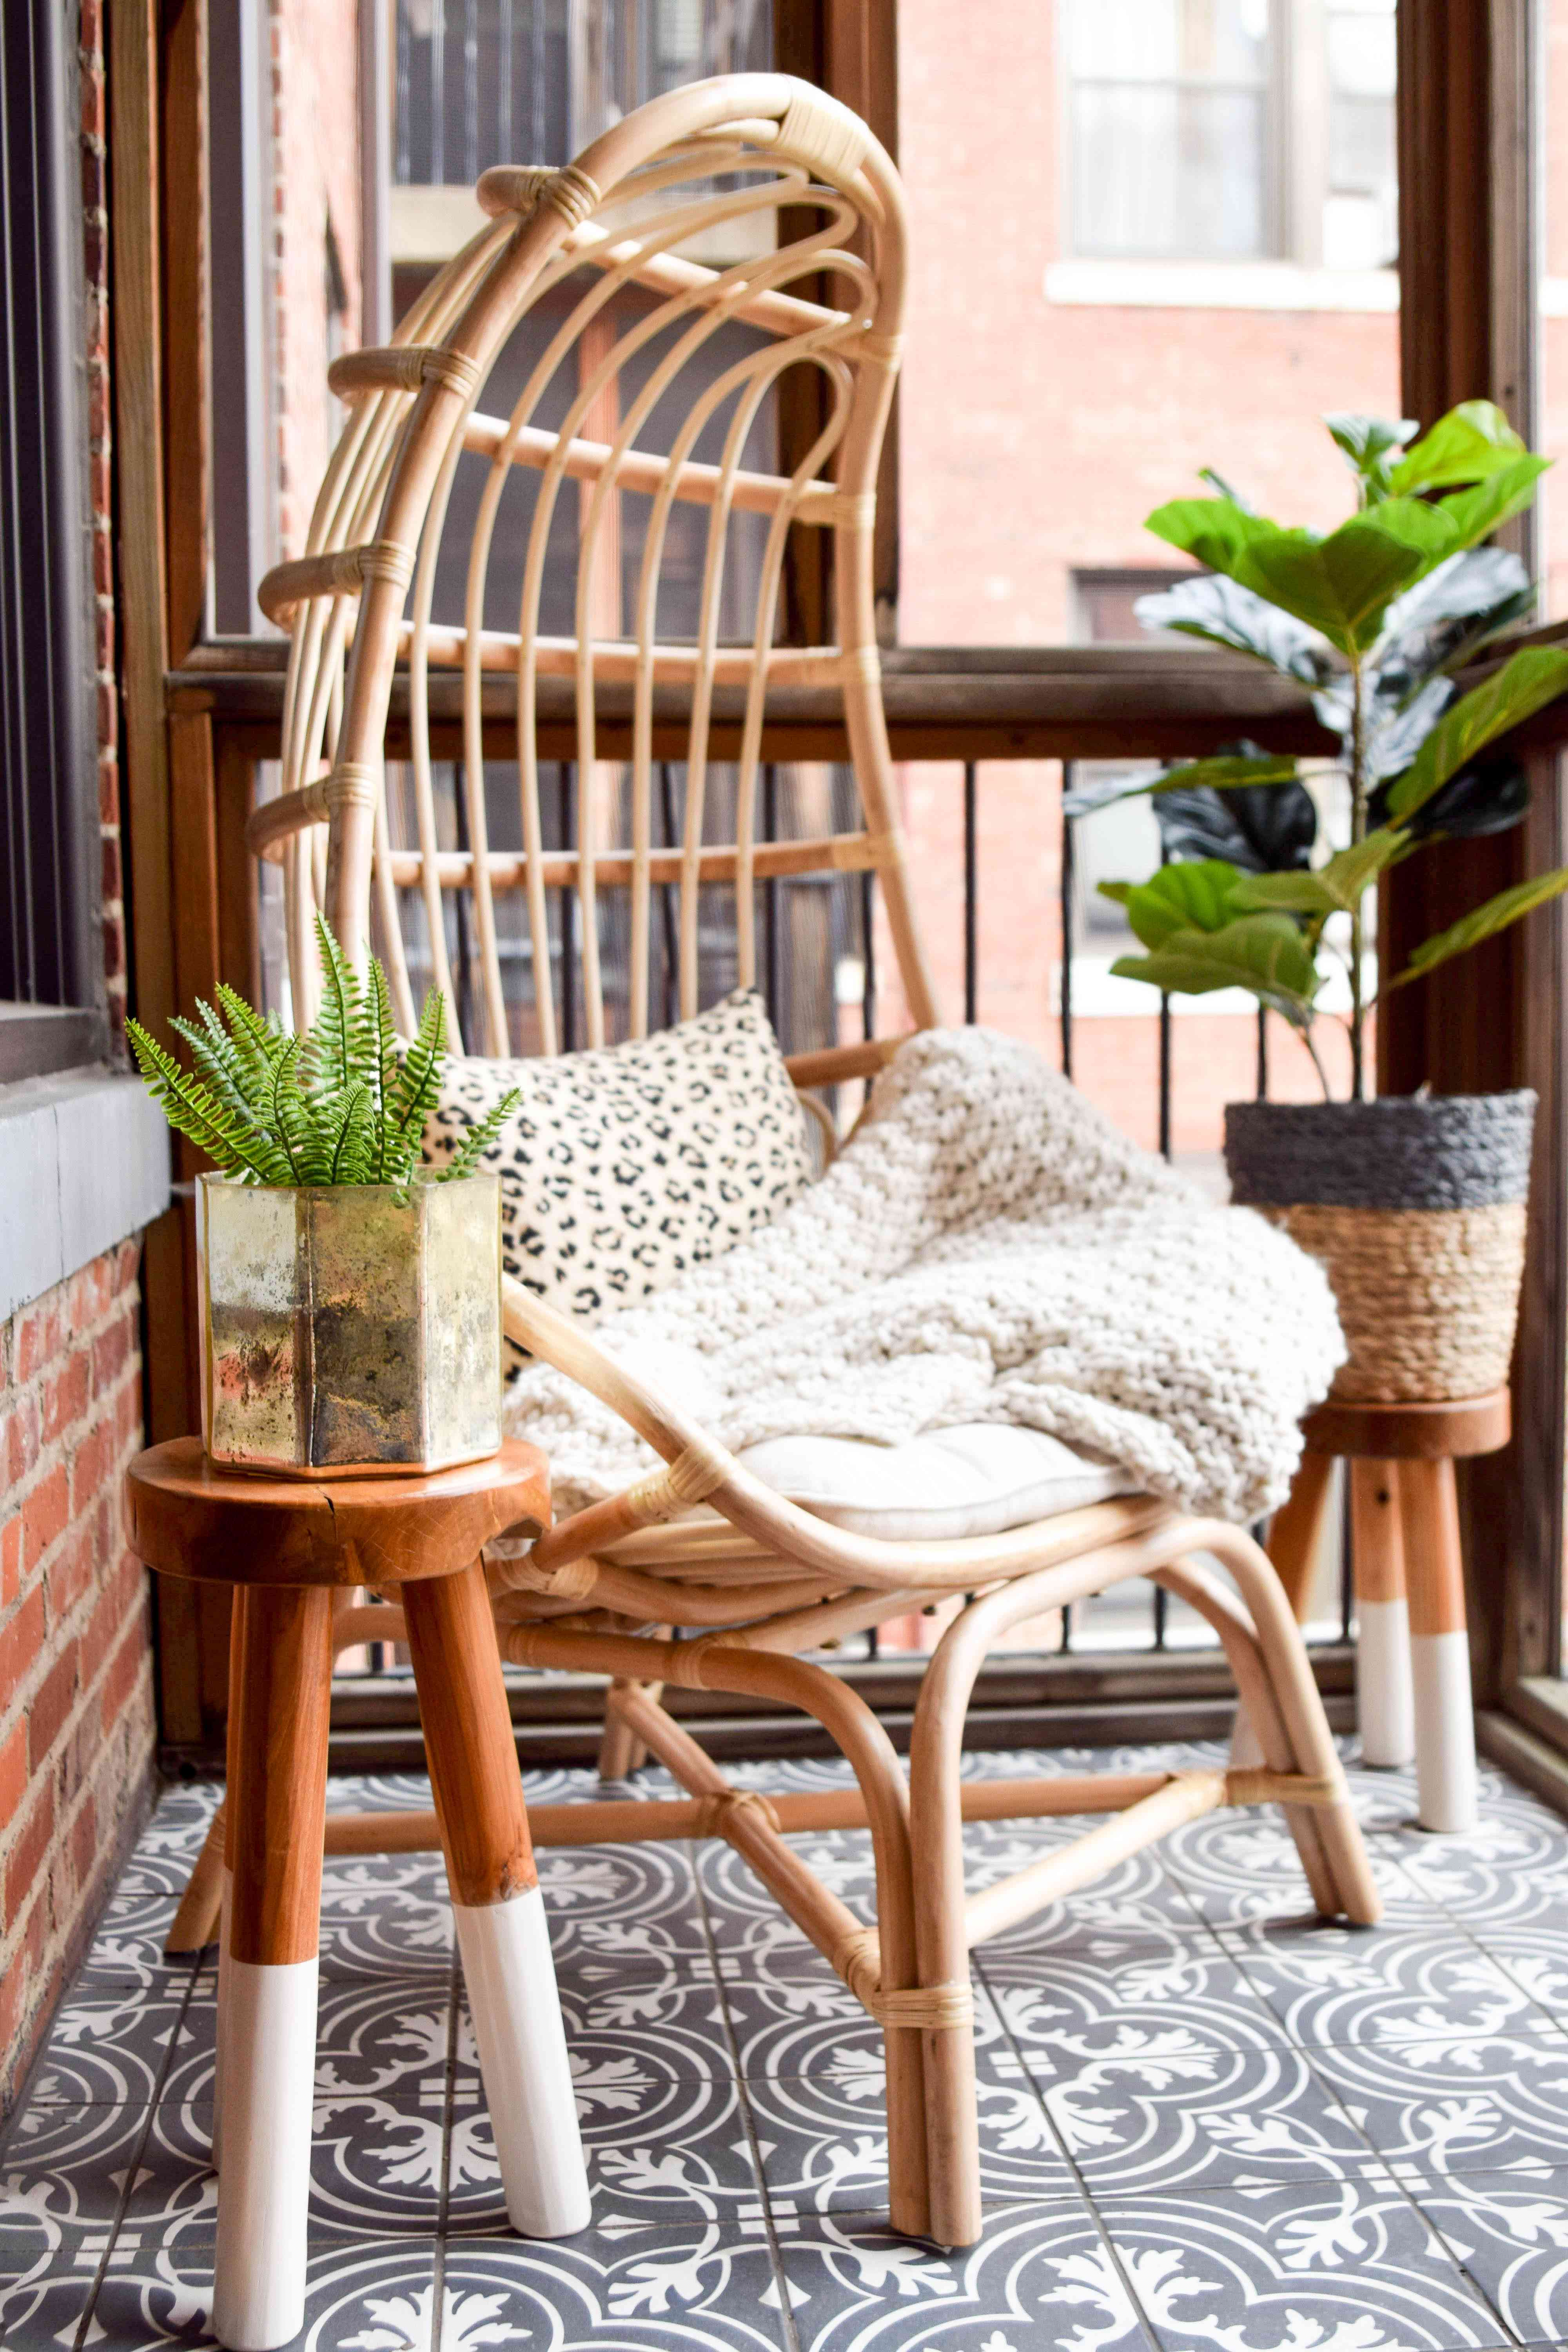 Cocoon chair on balcony.